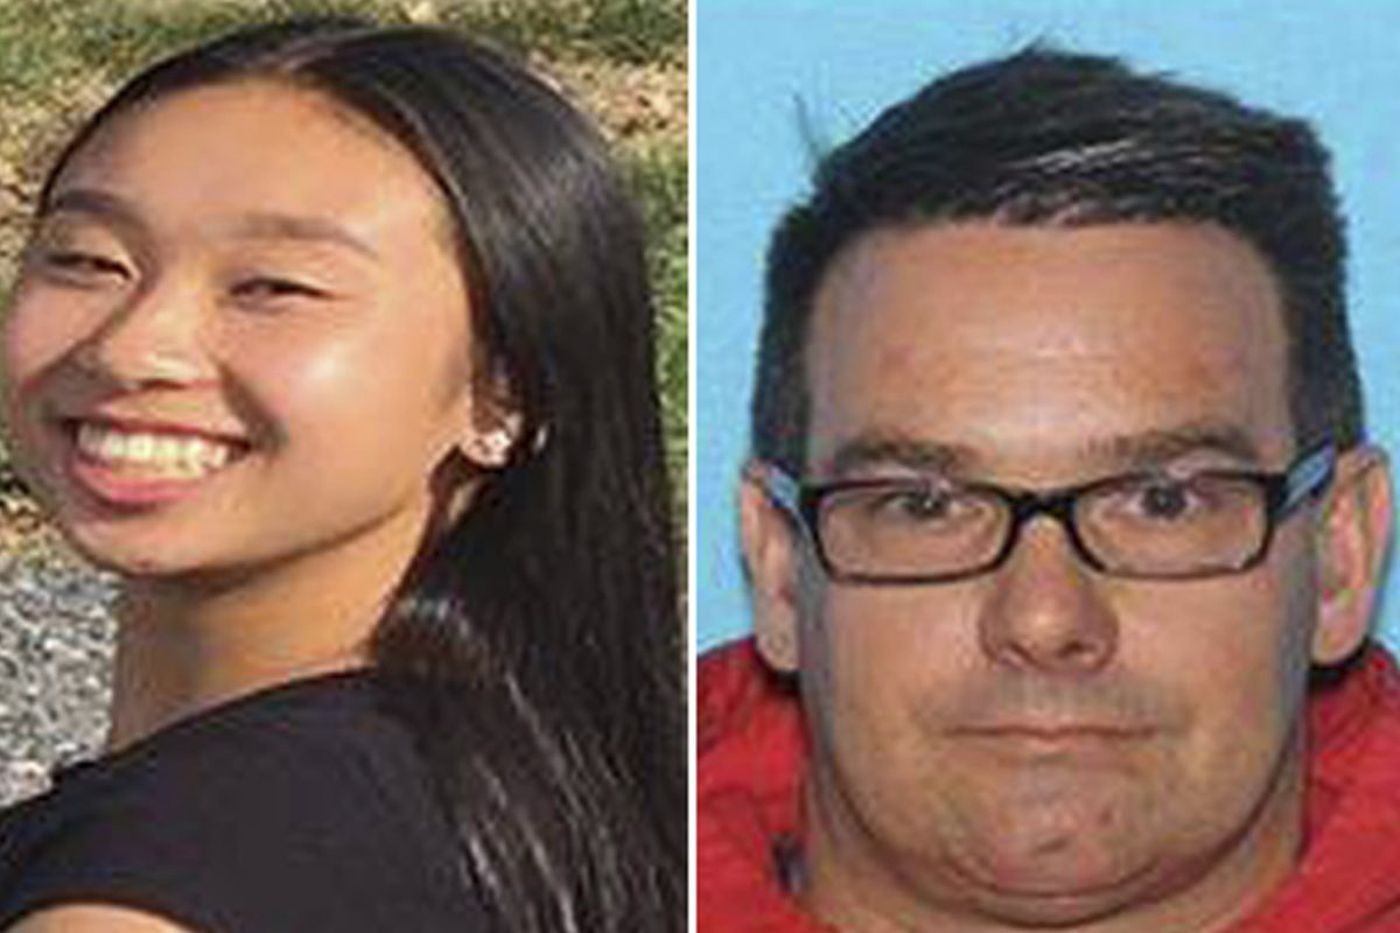 Missing Allentown teen who went to Mexico with man is back home, man is in custody